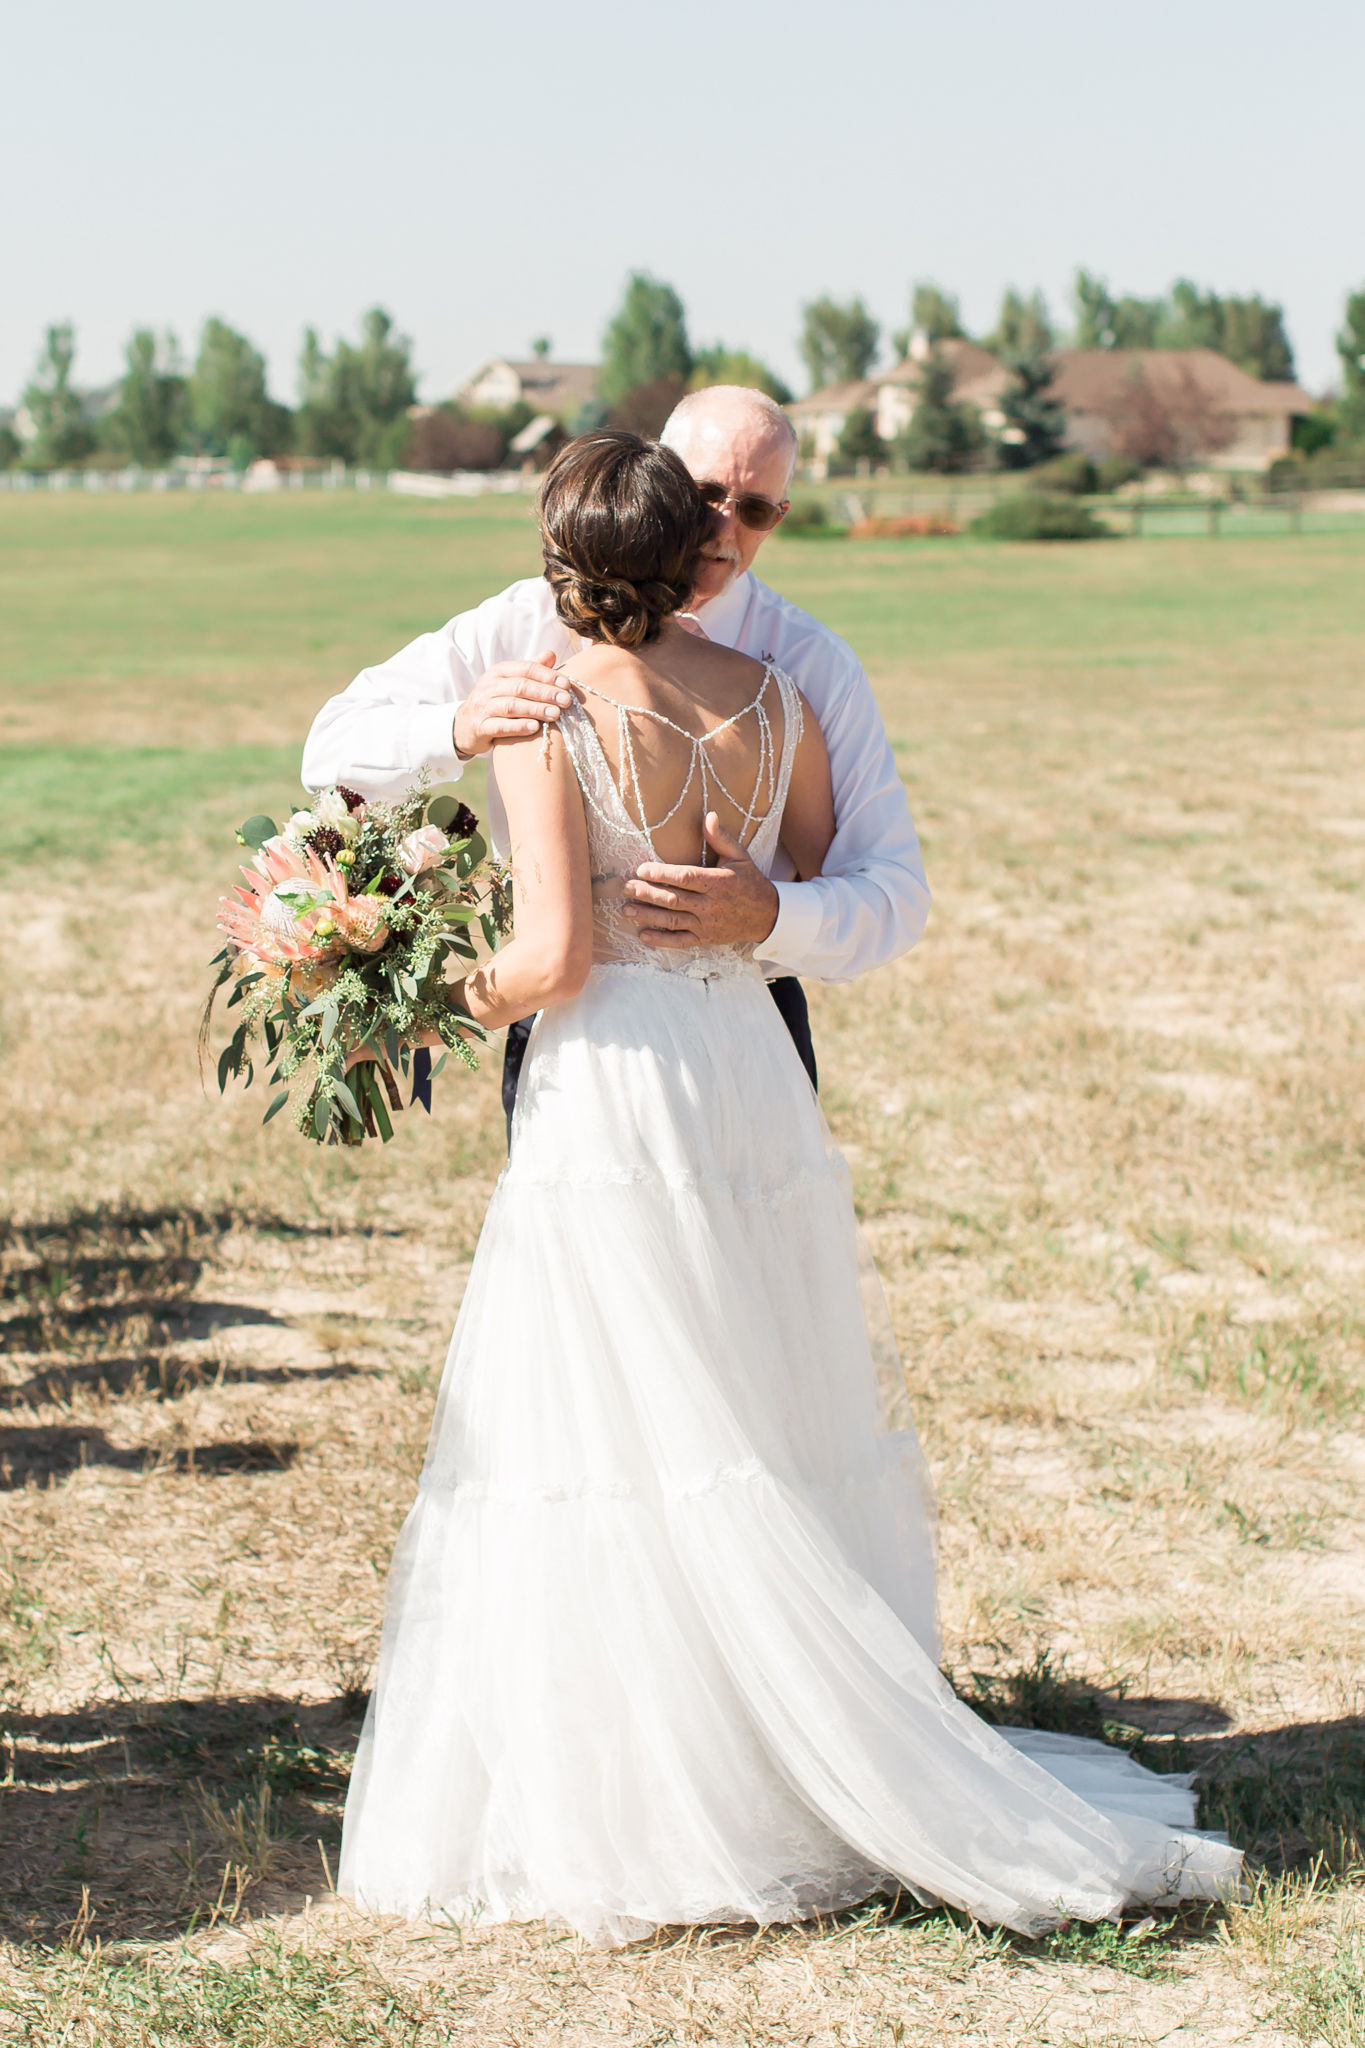 father giving bride away